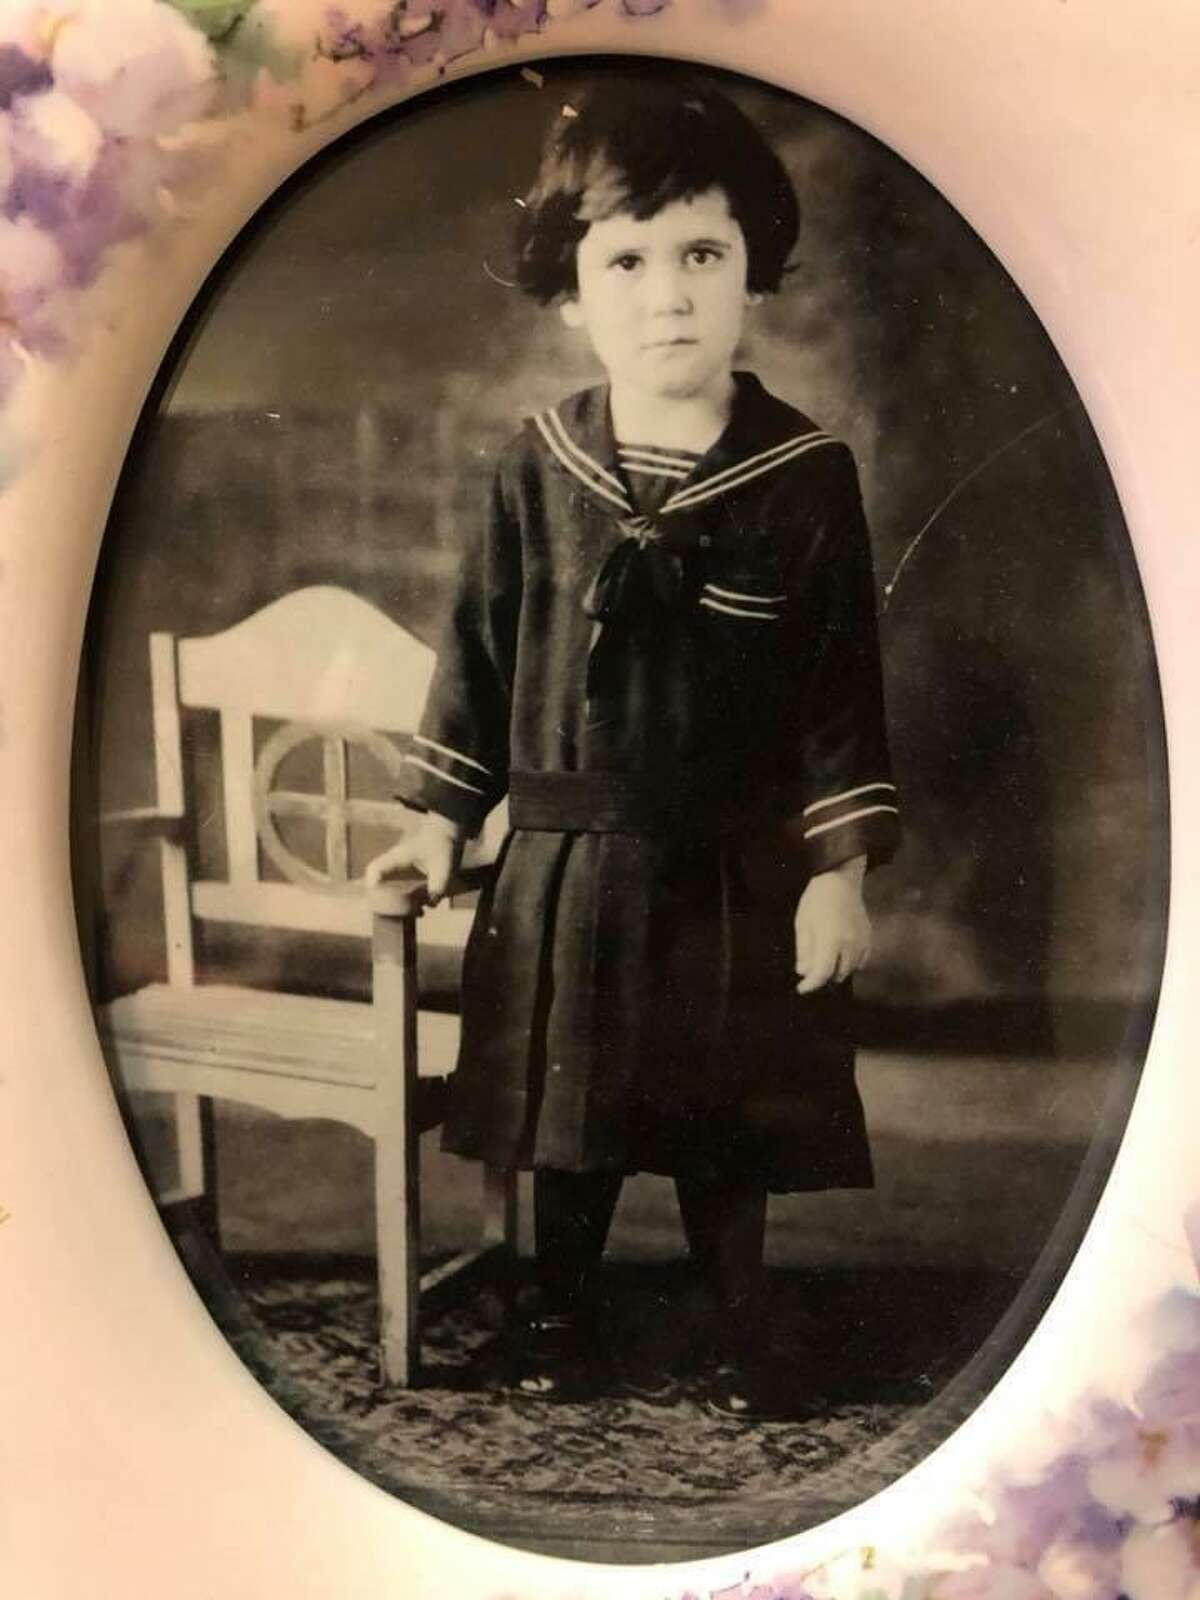 Beatrice Flanagan Polak Fojtik was 14-months-old when she arrived in East Bernard. Of Irish extraction, she learned Czech at home and English at school.